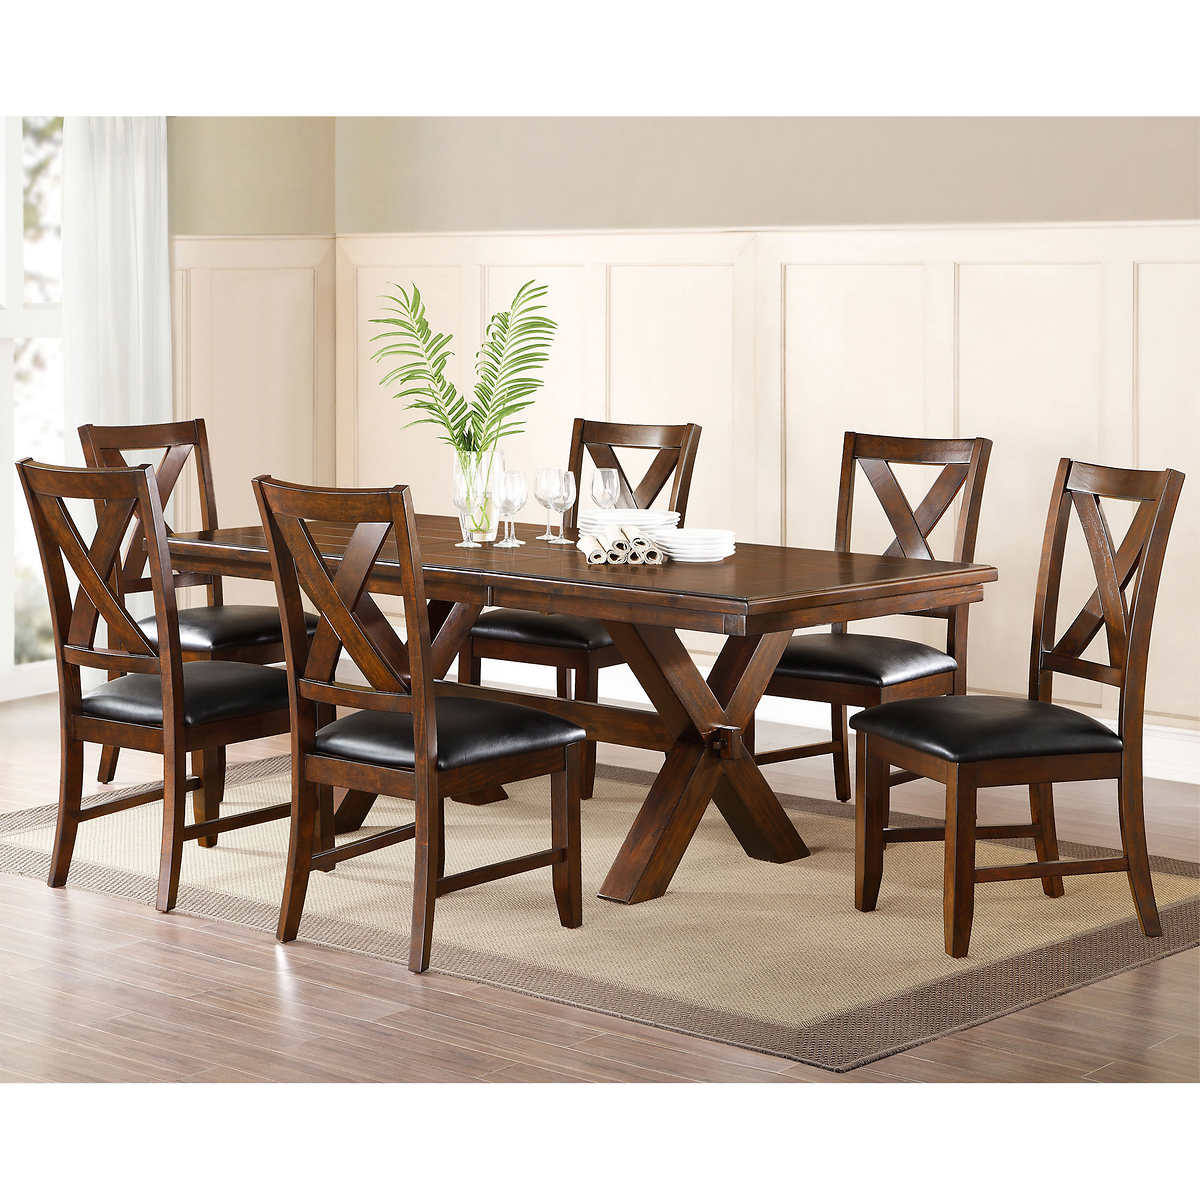 bayside furnishings dining sets | costco